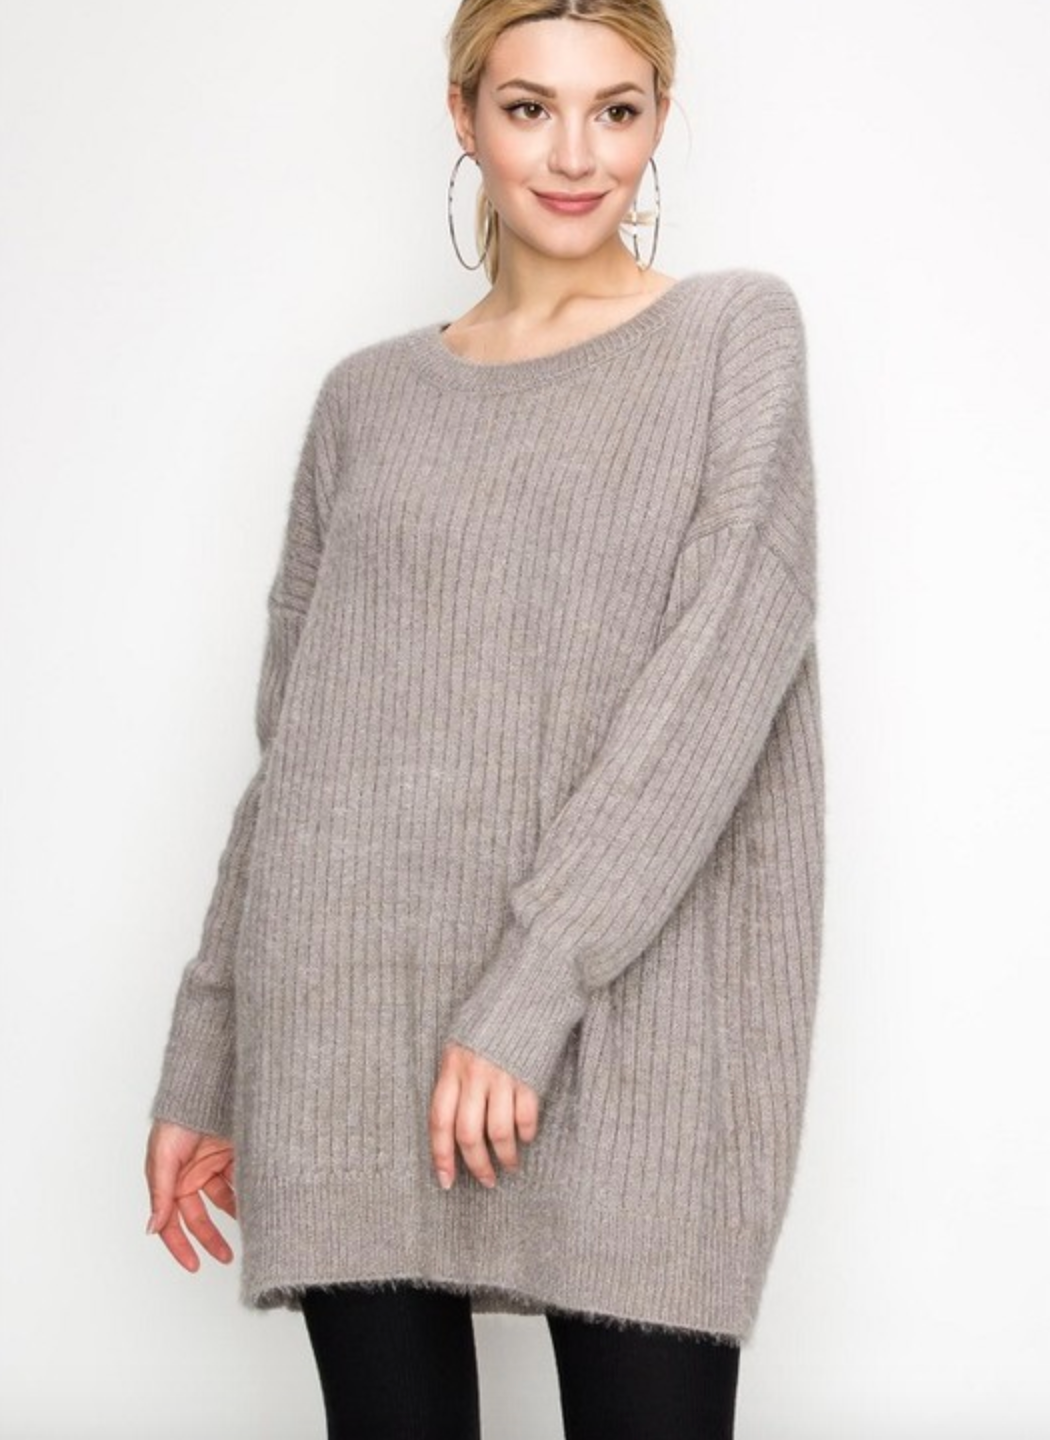 The Adelaide Sweater Dress